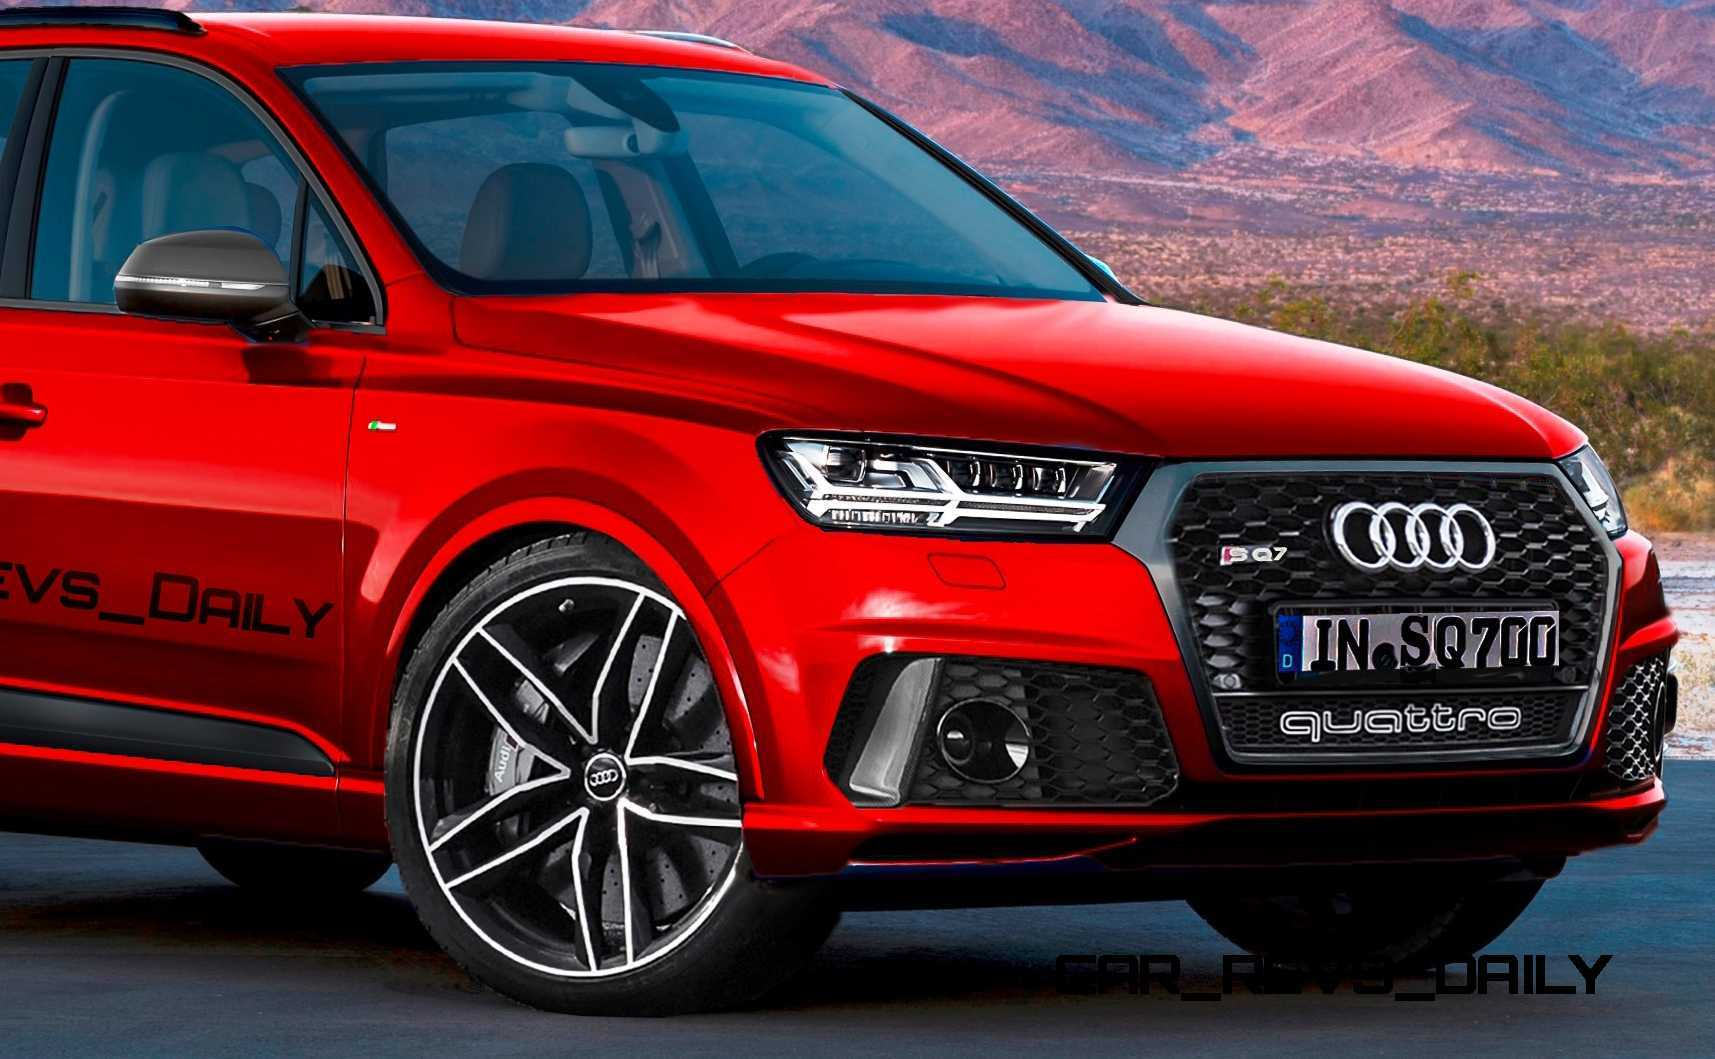 Future-SUV-Renderings-2016-Audi-RS-Q7-12a.jpg